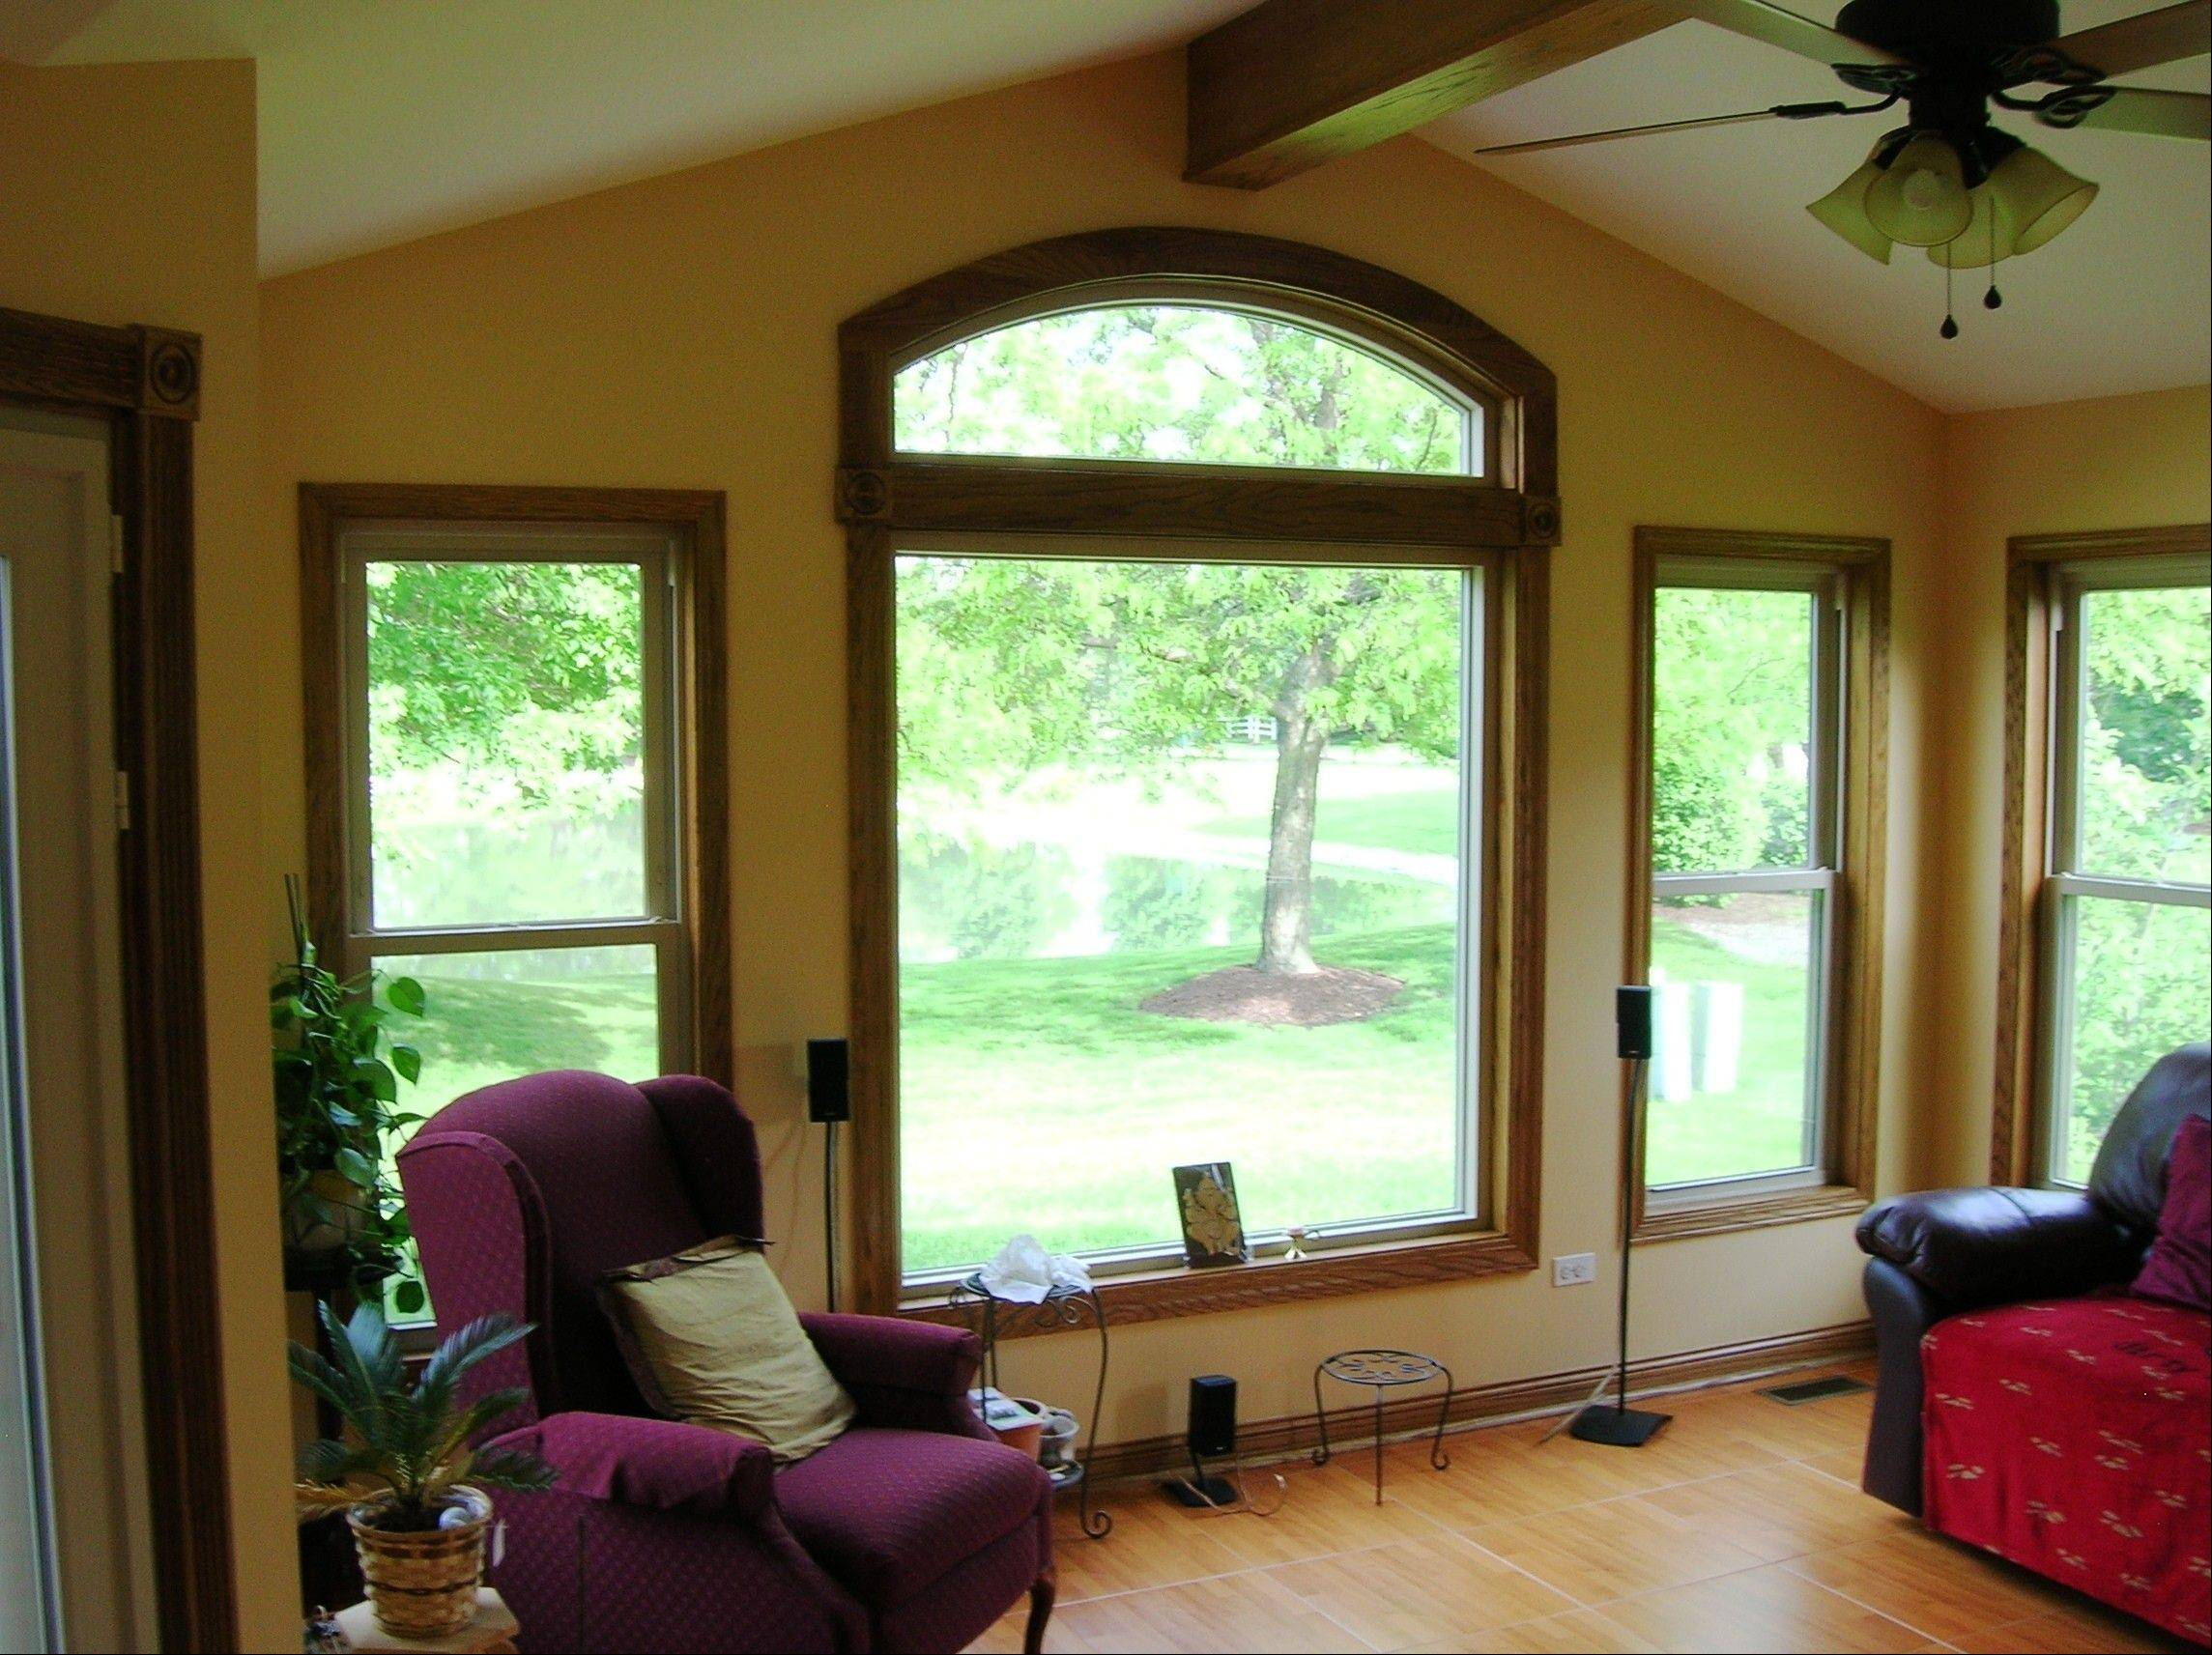 The average sunroom addition costs between $20,000 and $50,000.